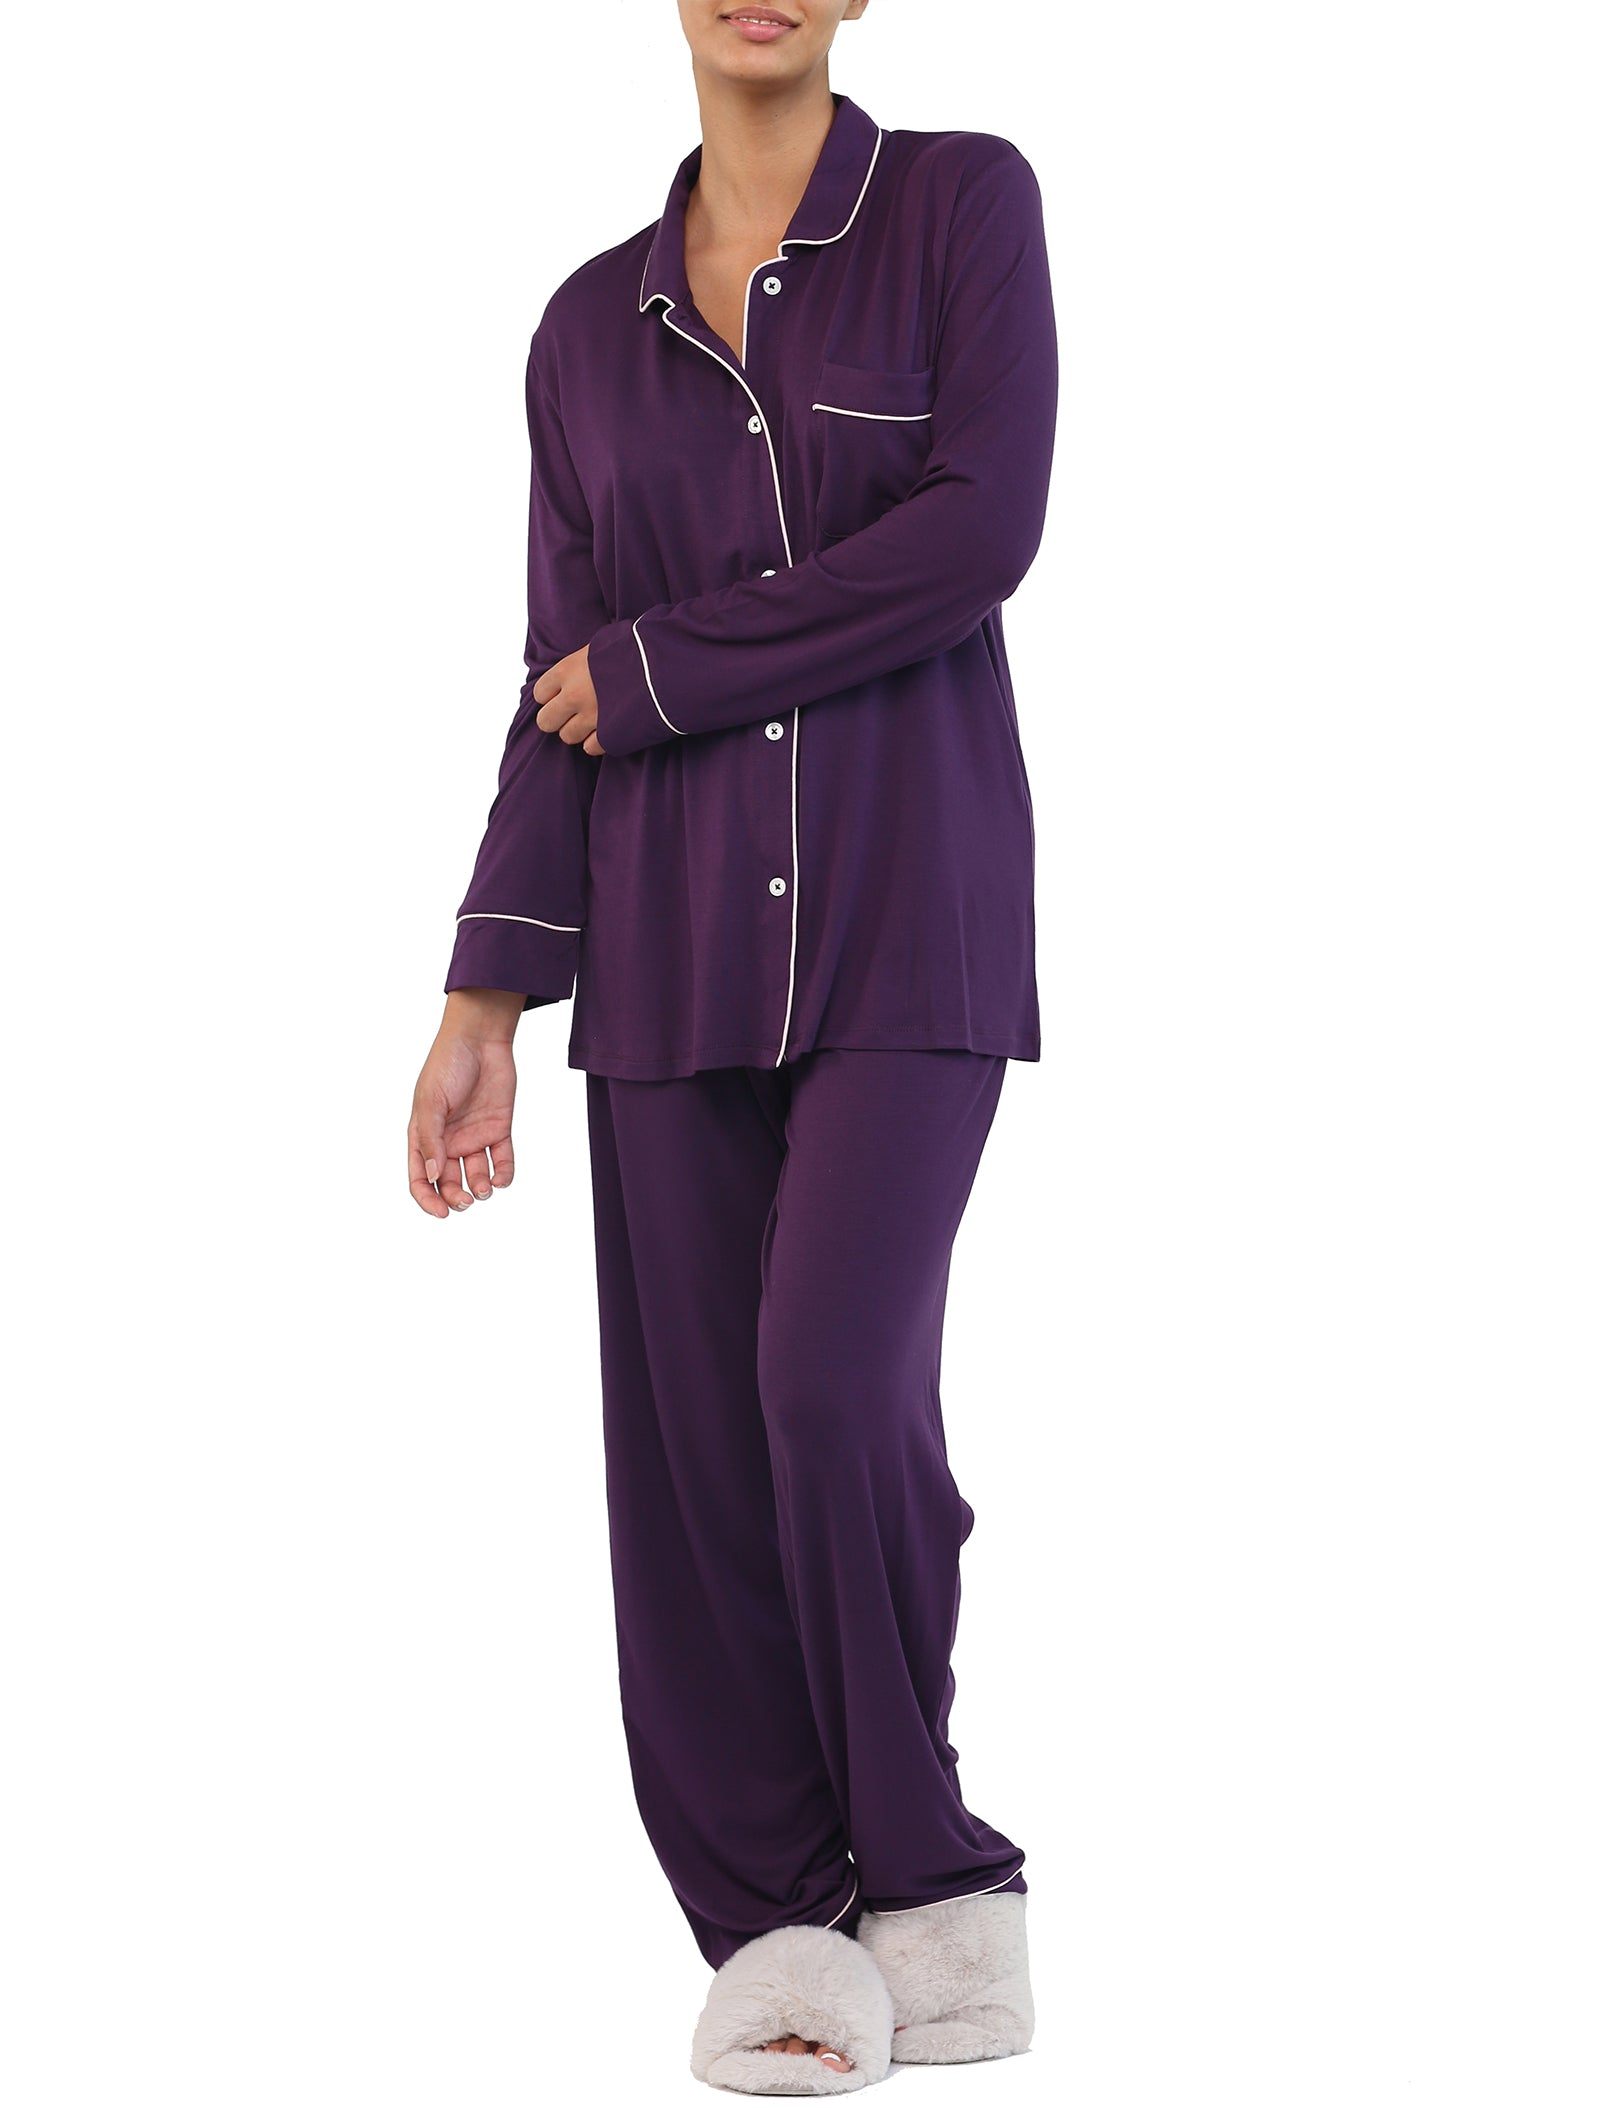 Modal Kate PJ in Prune